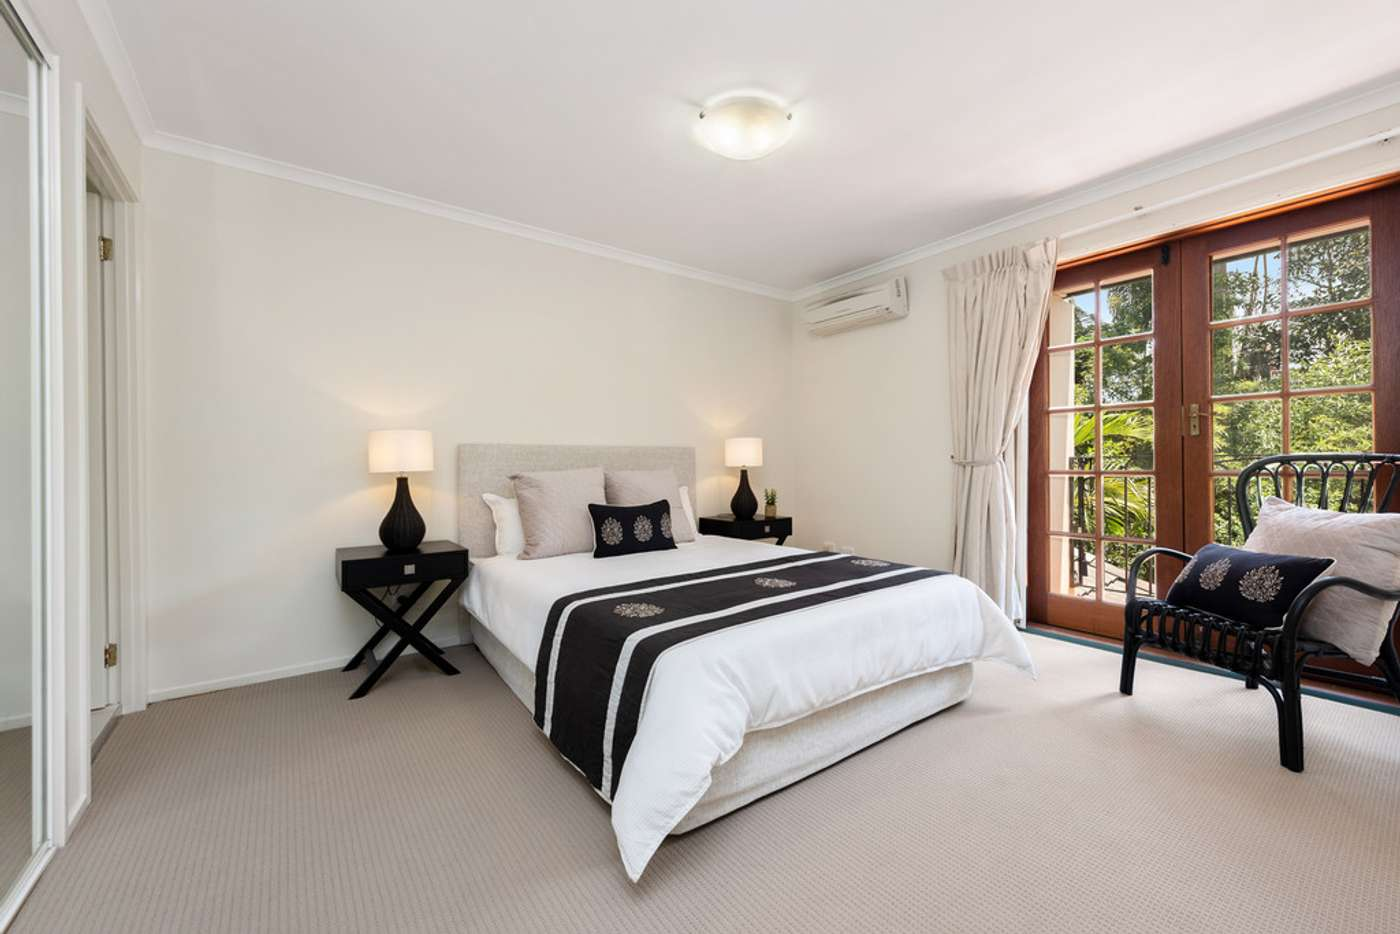 Sixth view of Homely townhouse listing, 3/74A Sir Fred Schonell Drive, St Lucia QLD 4067